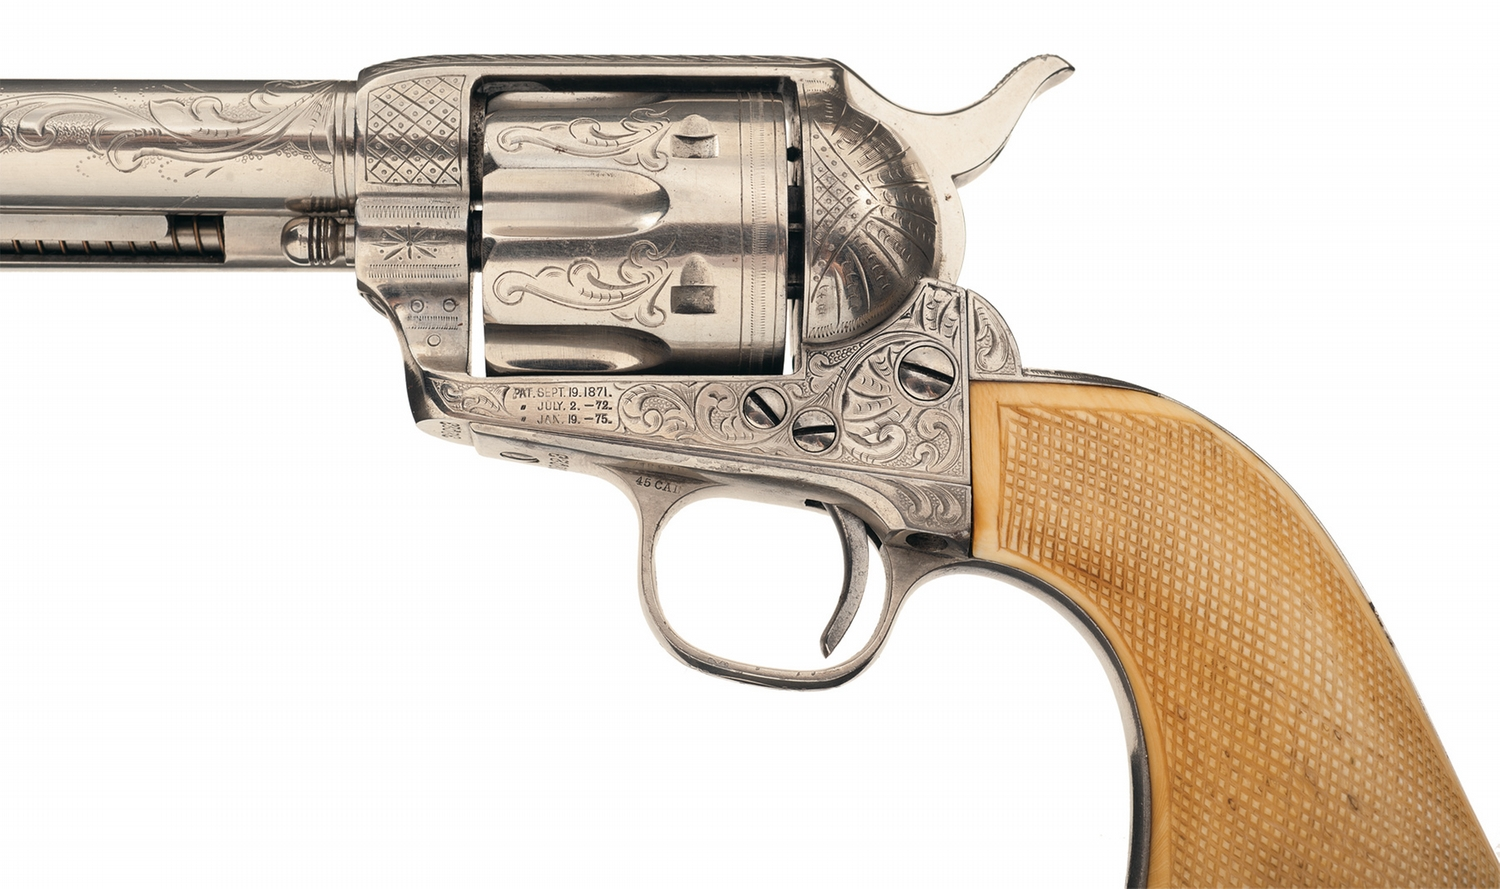 black single women in colt Flli pietta 1873 sa revolvers are faithful re-creations of the venerable 1873 colt® single-action army revolvers, also known as peacemakers or simply colt 45s.